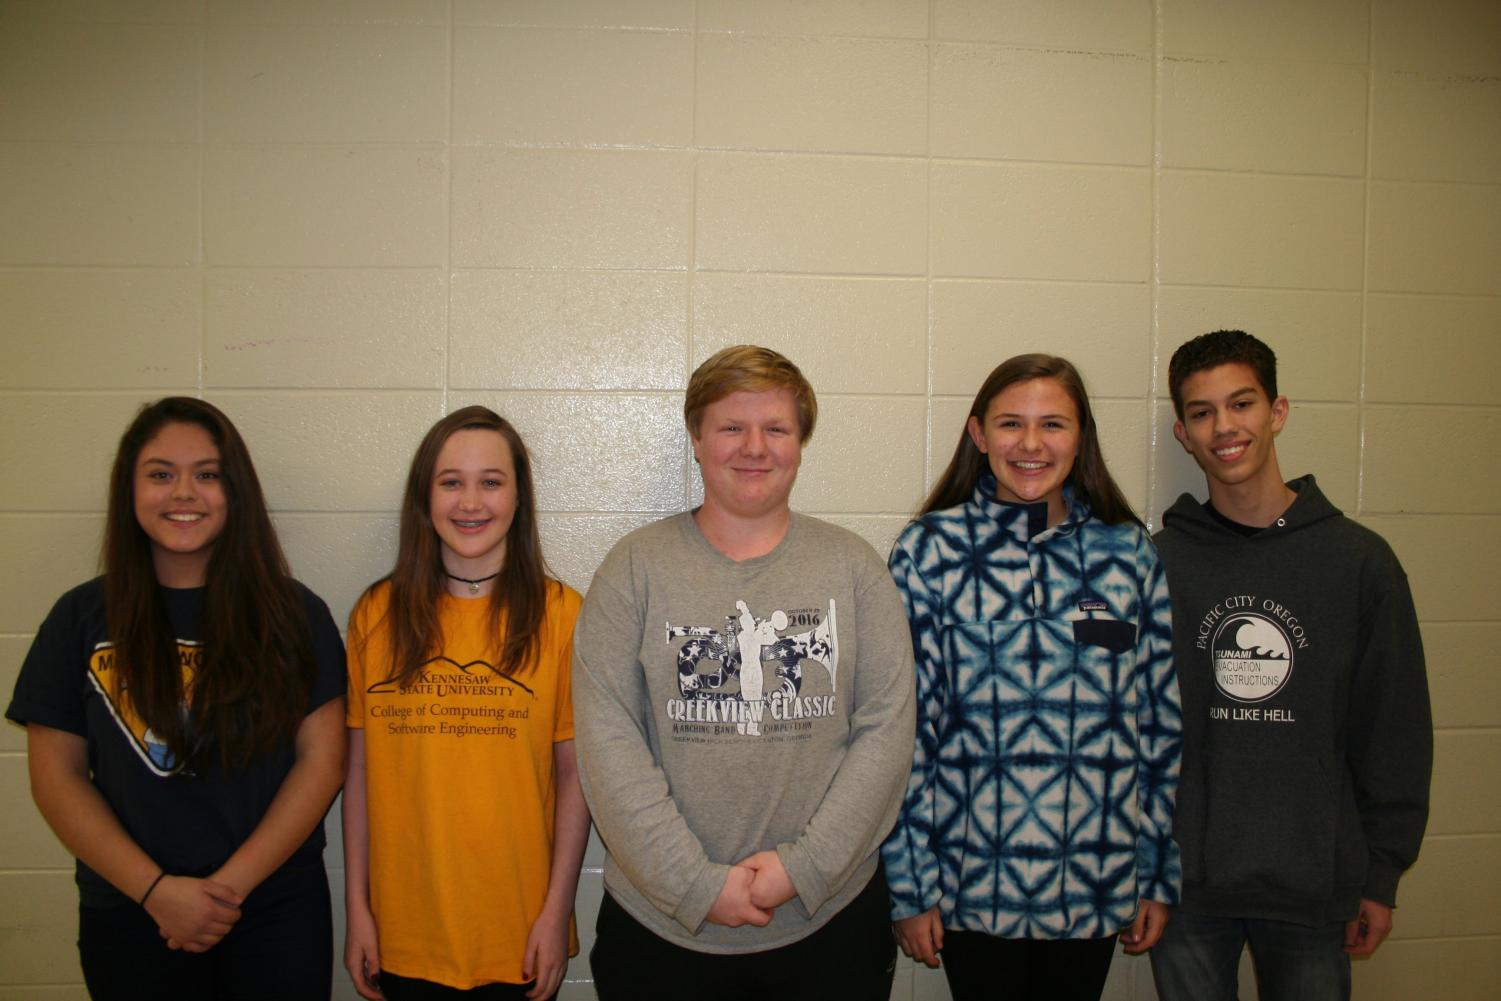 Narizabel Cardozo, Brittanit Gerkin, David Haugen, Lizzie Williams, and Jace Rettig are Sequoyah's representatives for All-State band and orchestra. The band and orchestra starts practicing on March 1st.